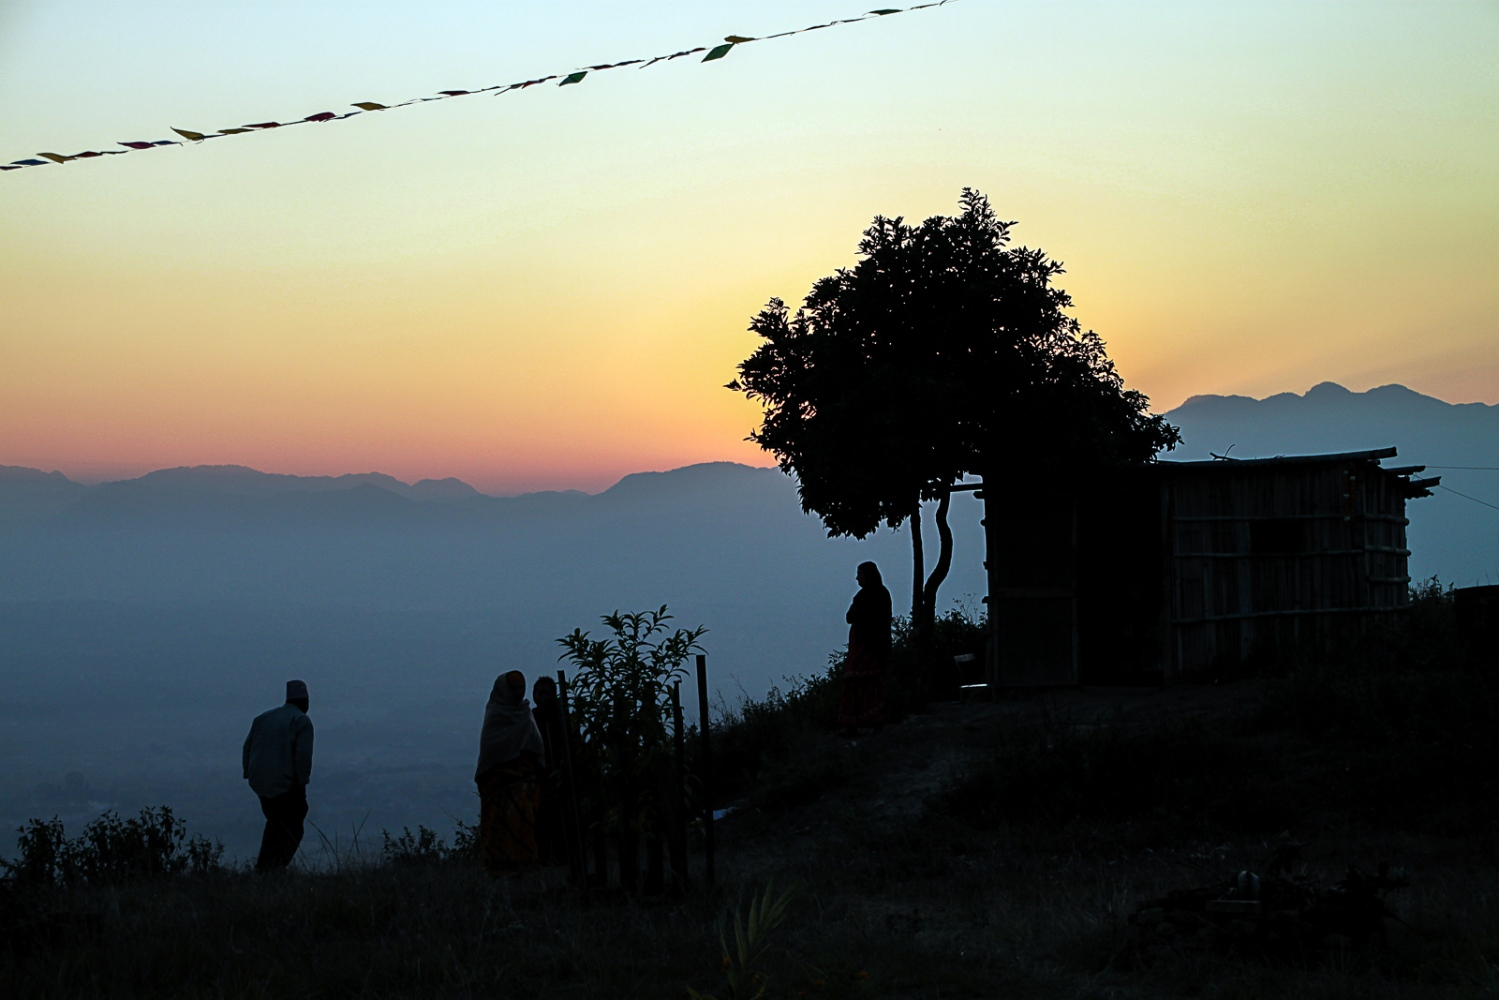 Kathmandu Valley, NEPAL, November 25, 2009: Scene at Chaling village during dusk.